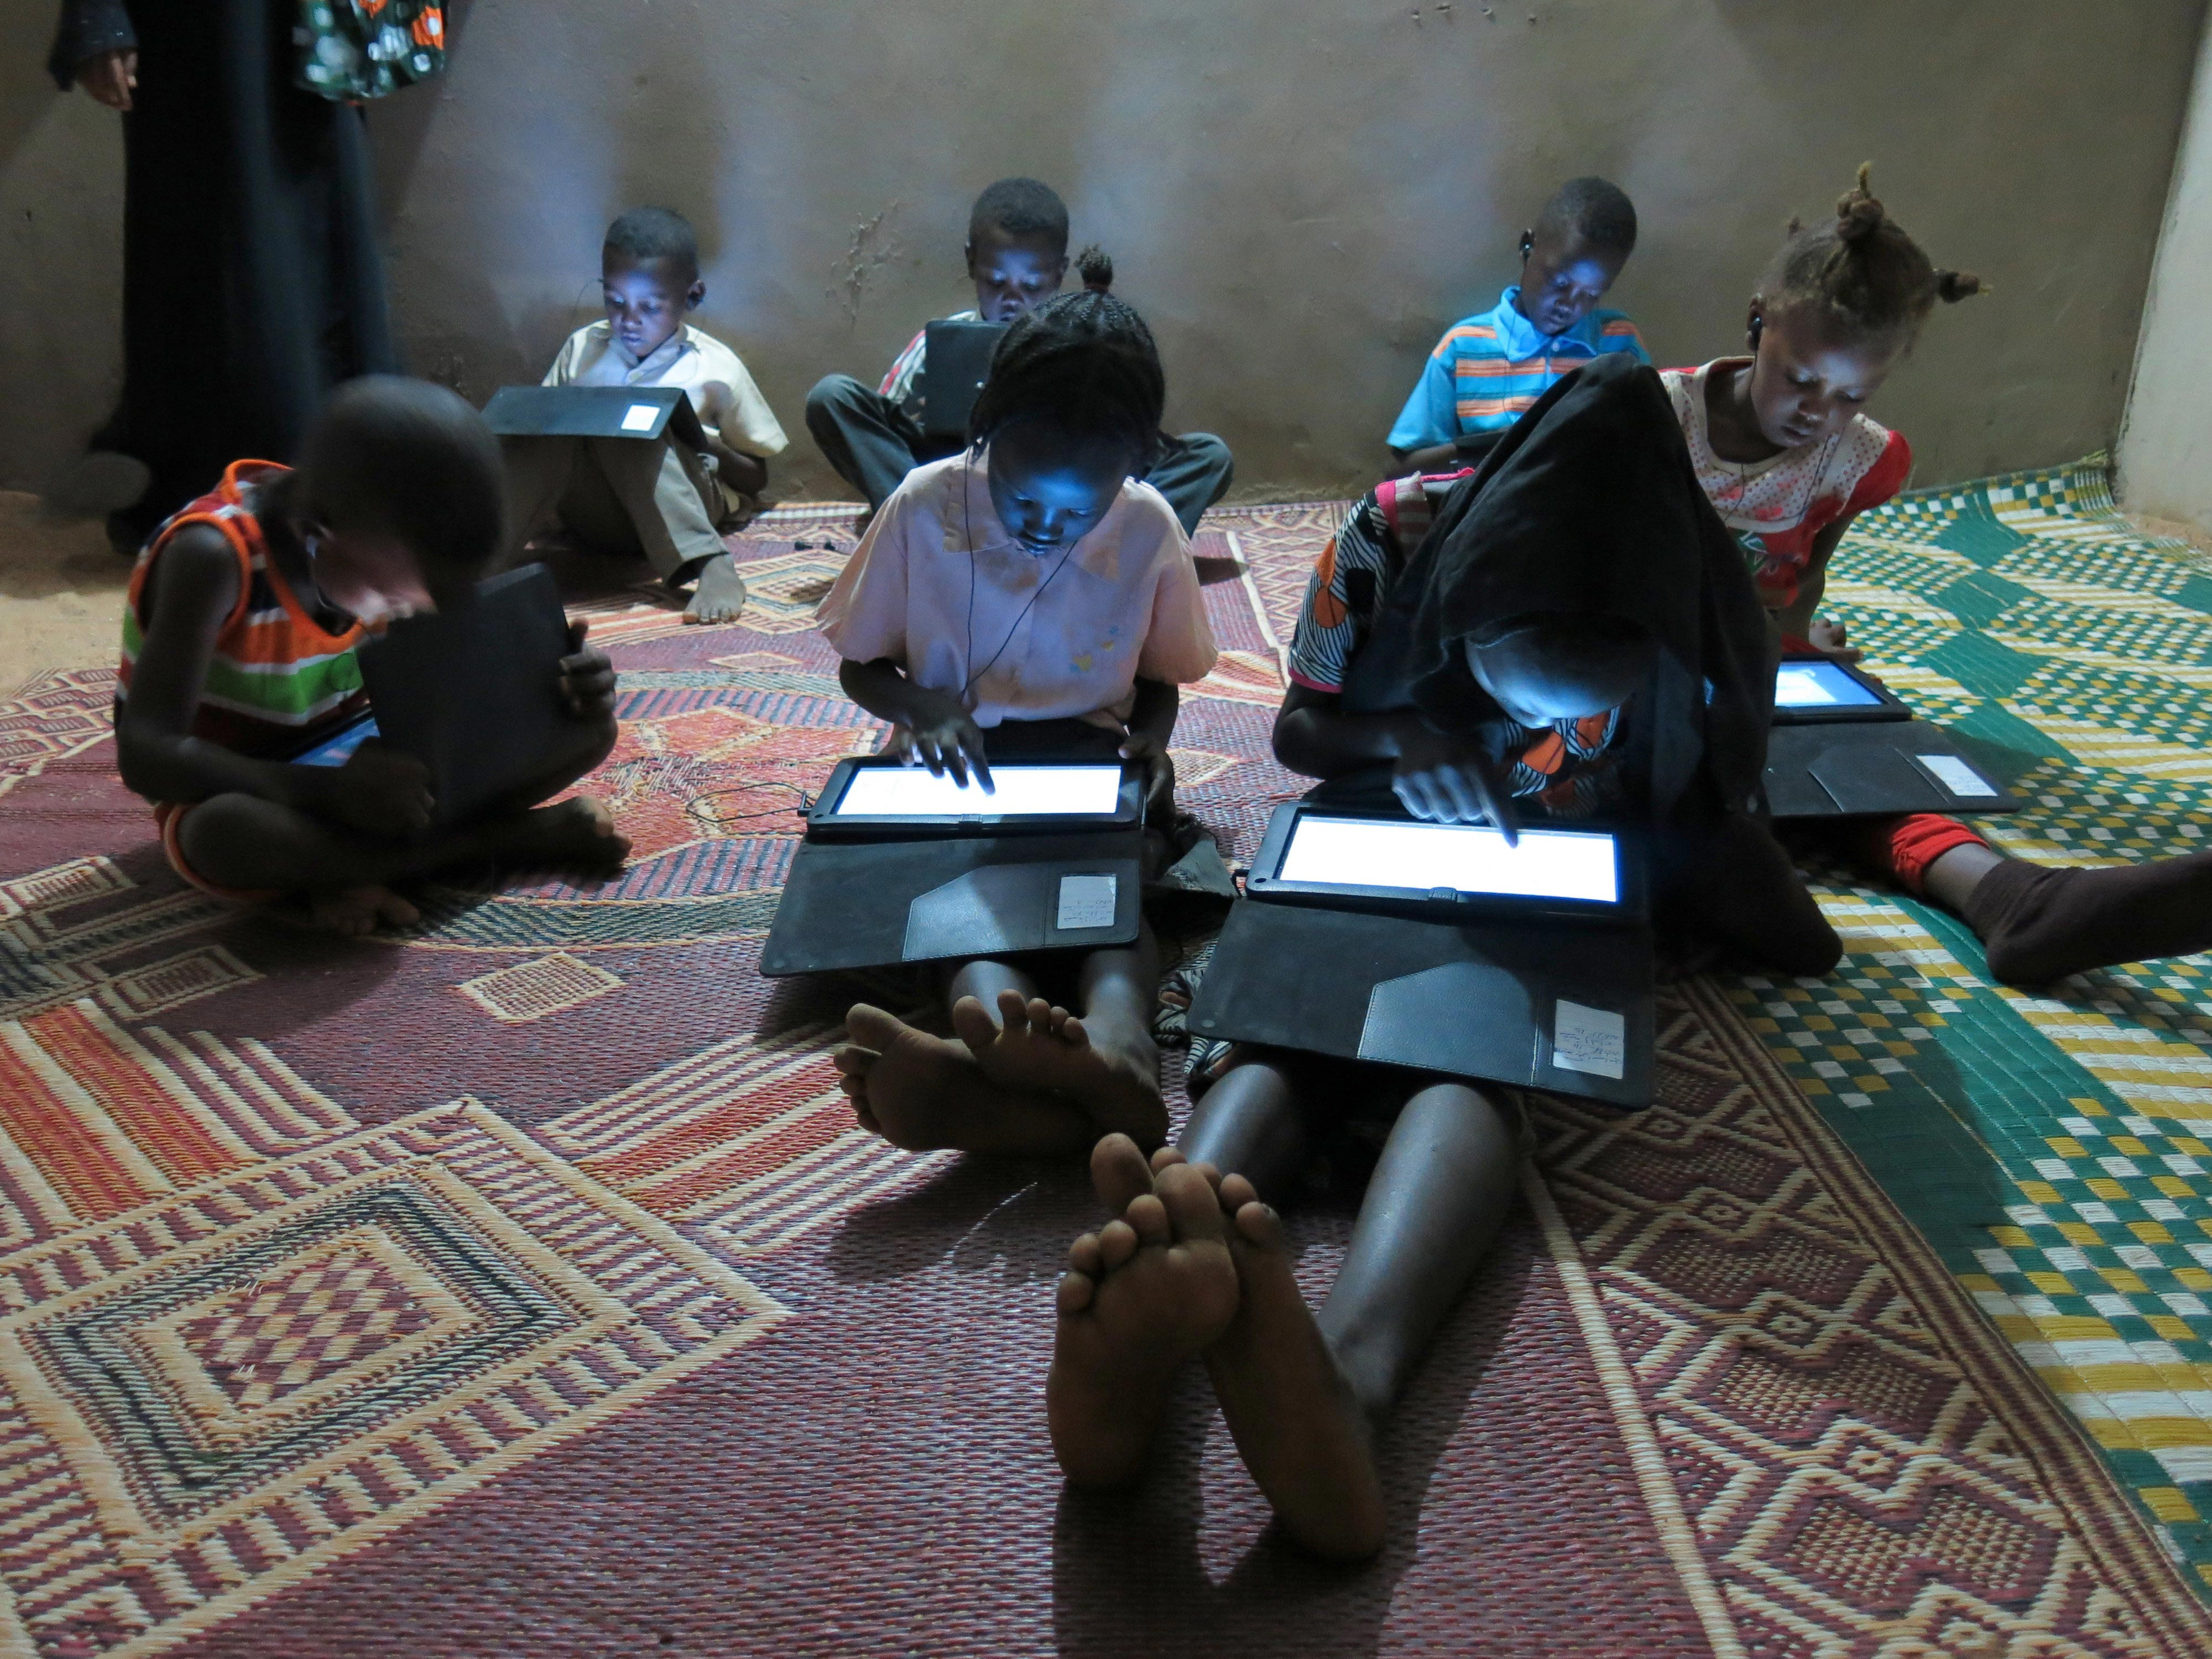 Children sit on a patterned rug, bent over brightly lit tablet screens